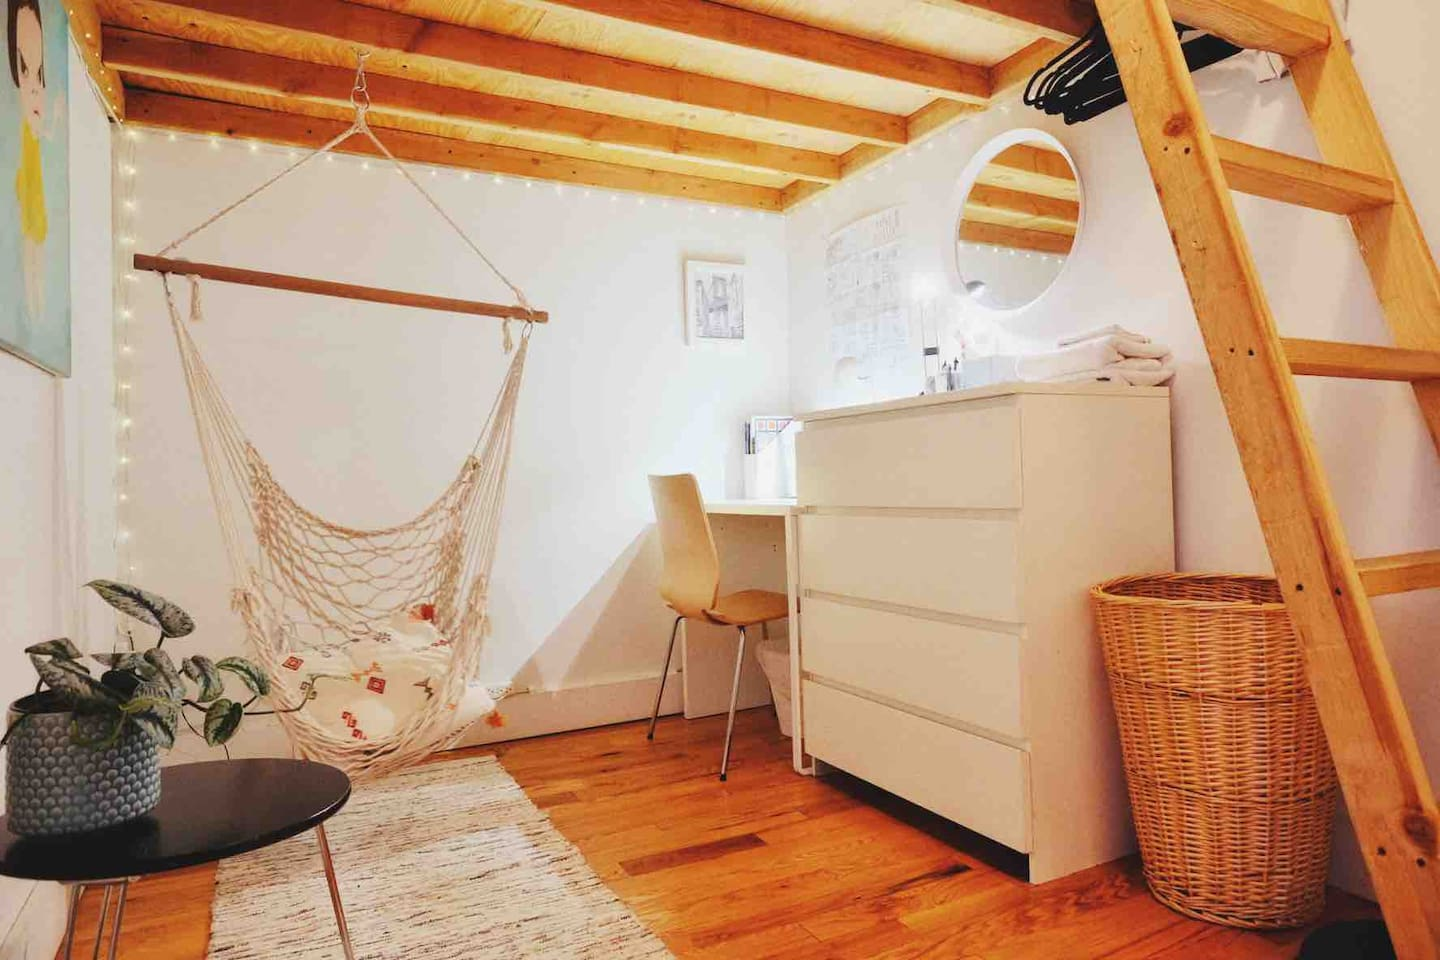 Lower part of the bedroom with a hammock, desk, and dresser